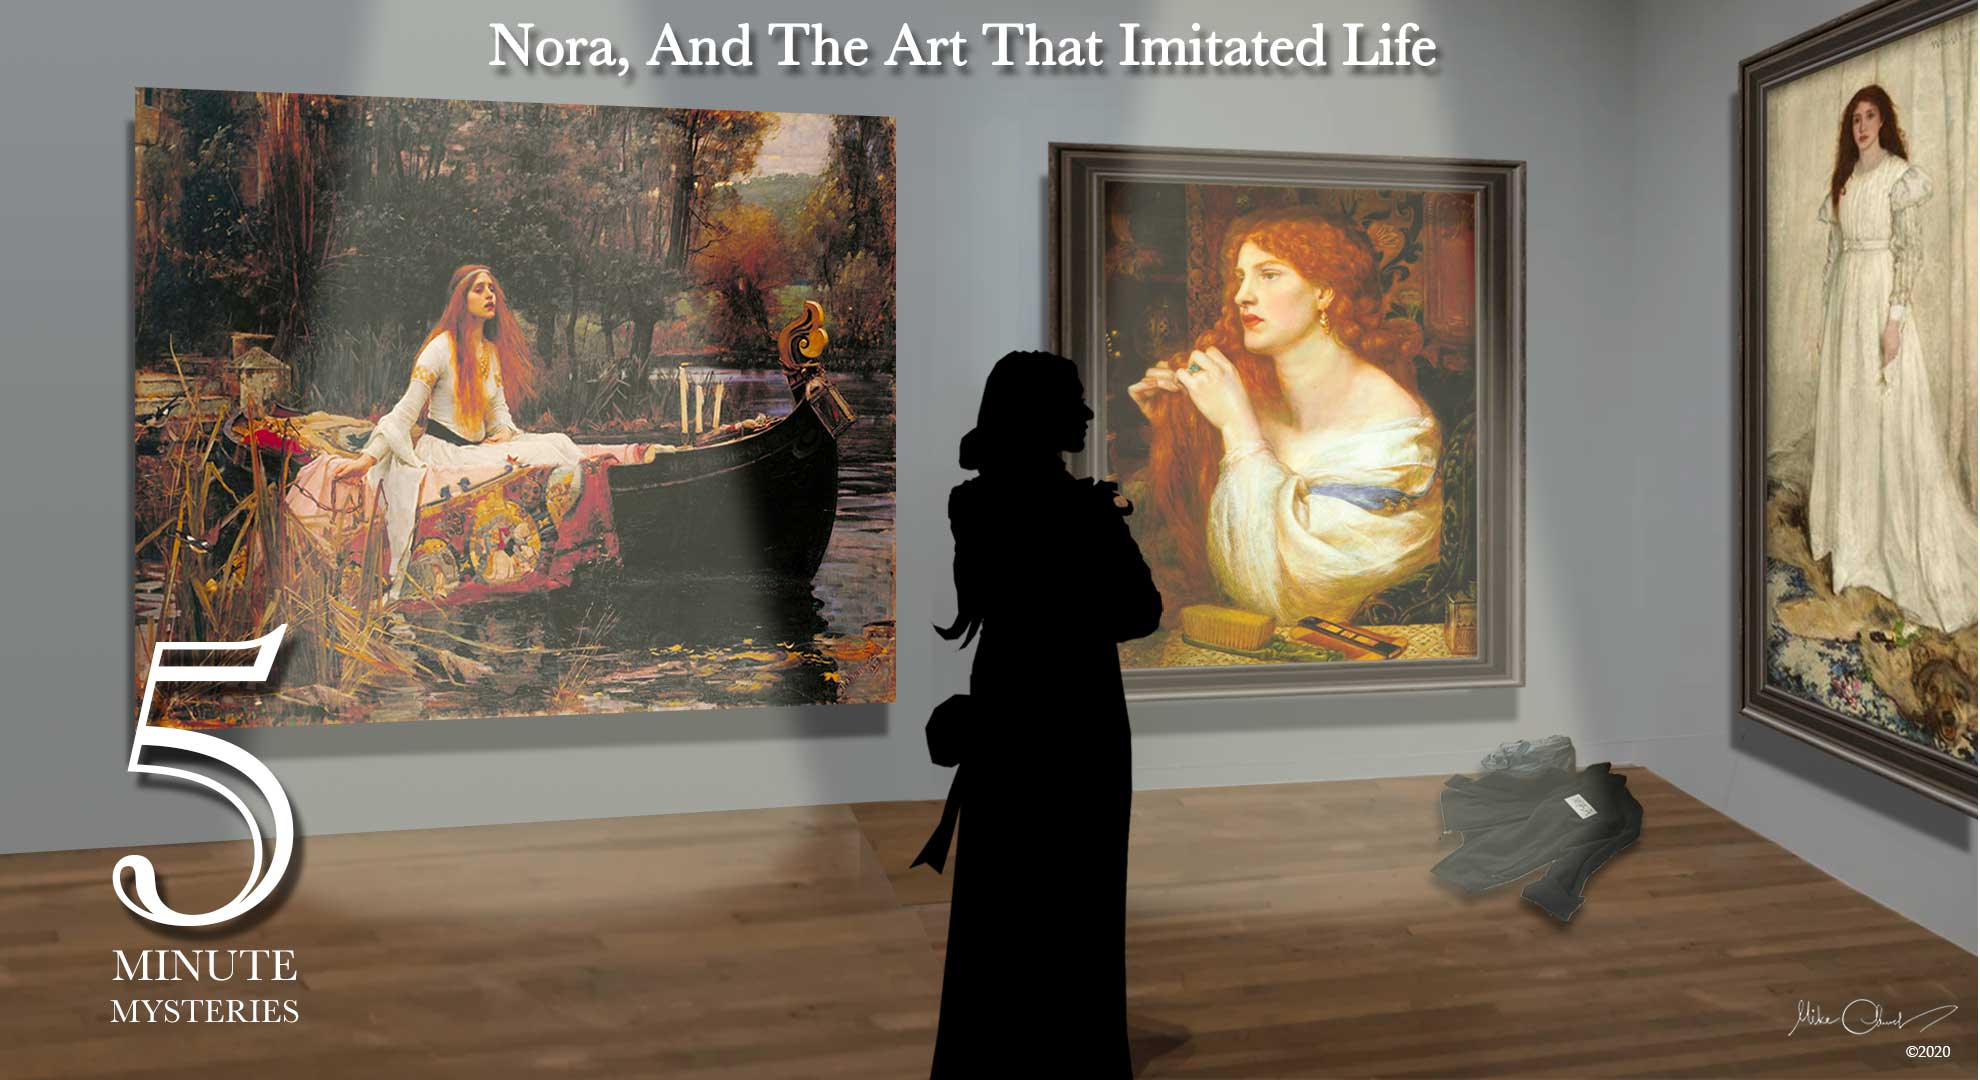 5 Minute Mysteries Season 2, Episode 3 - Nora, And The Art That Imitated Life